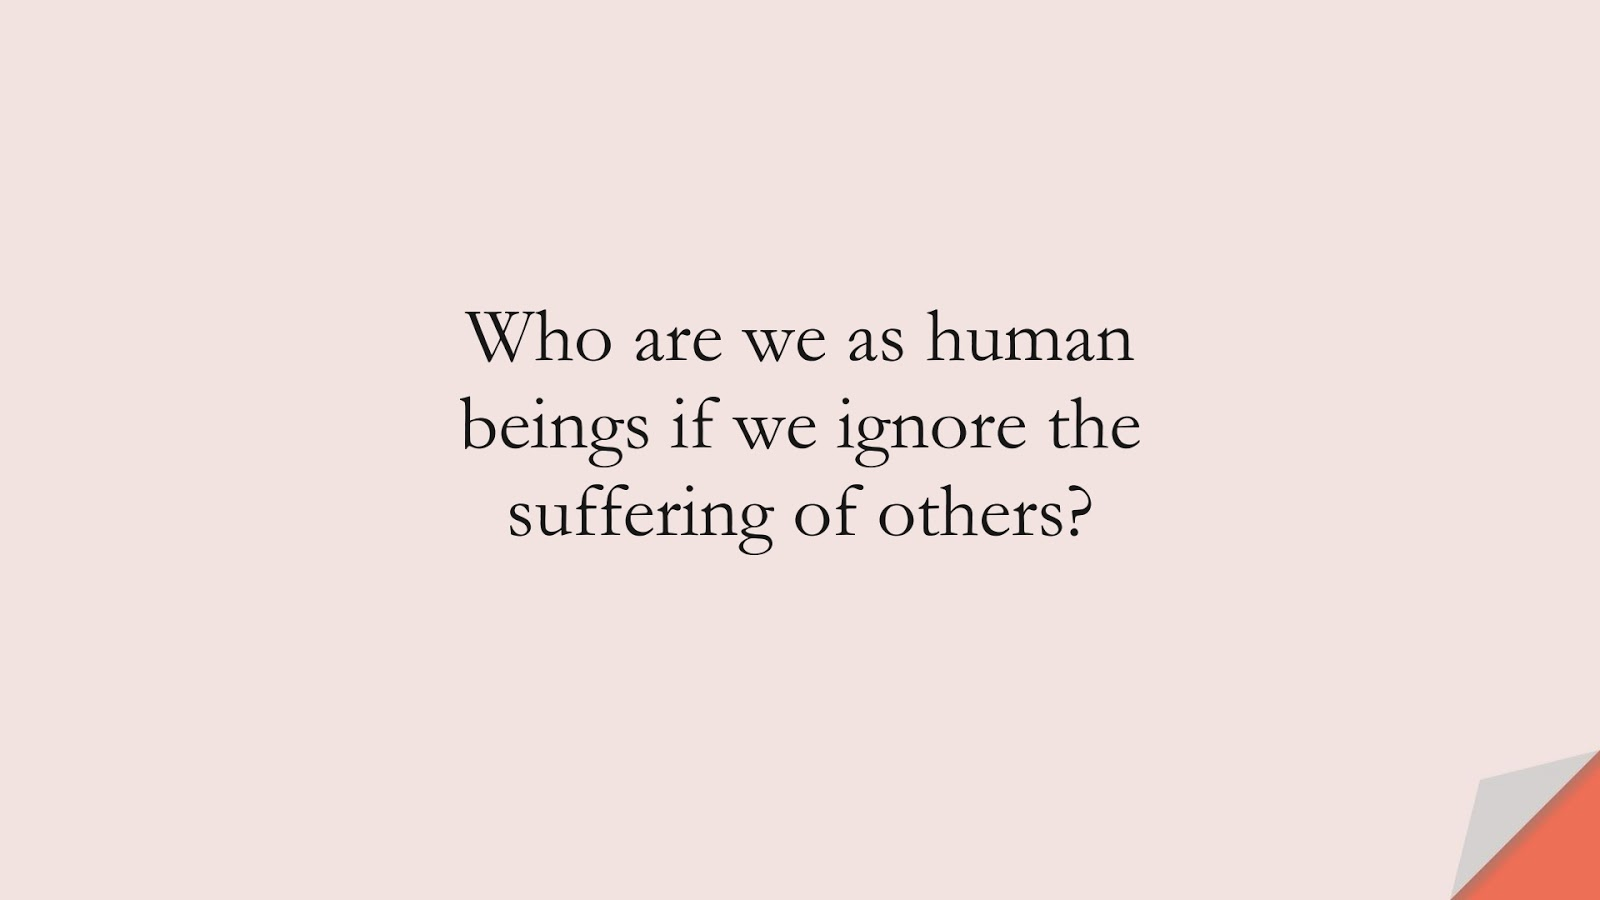 Who are we as human beings if we ignore the suffering of others?FALSE